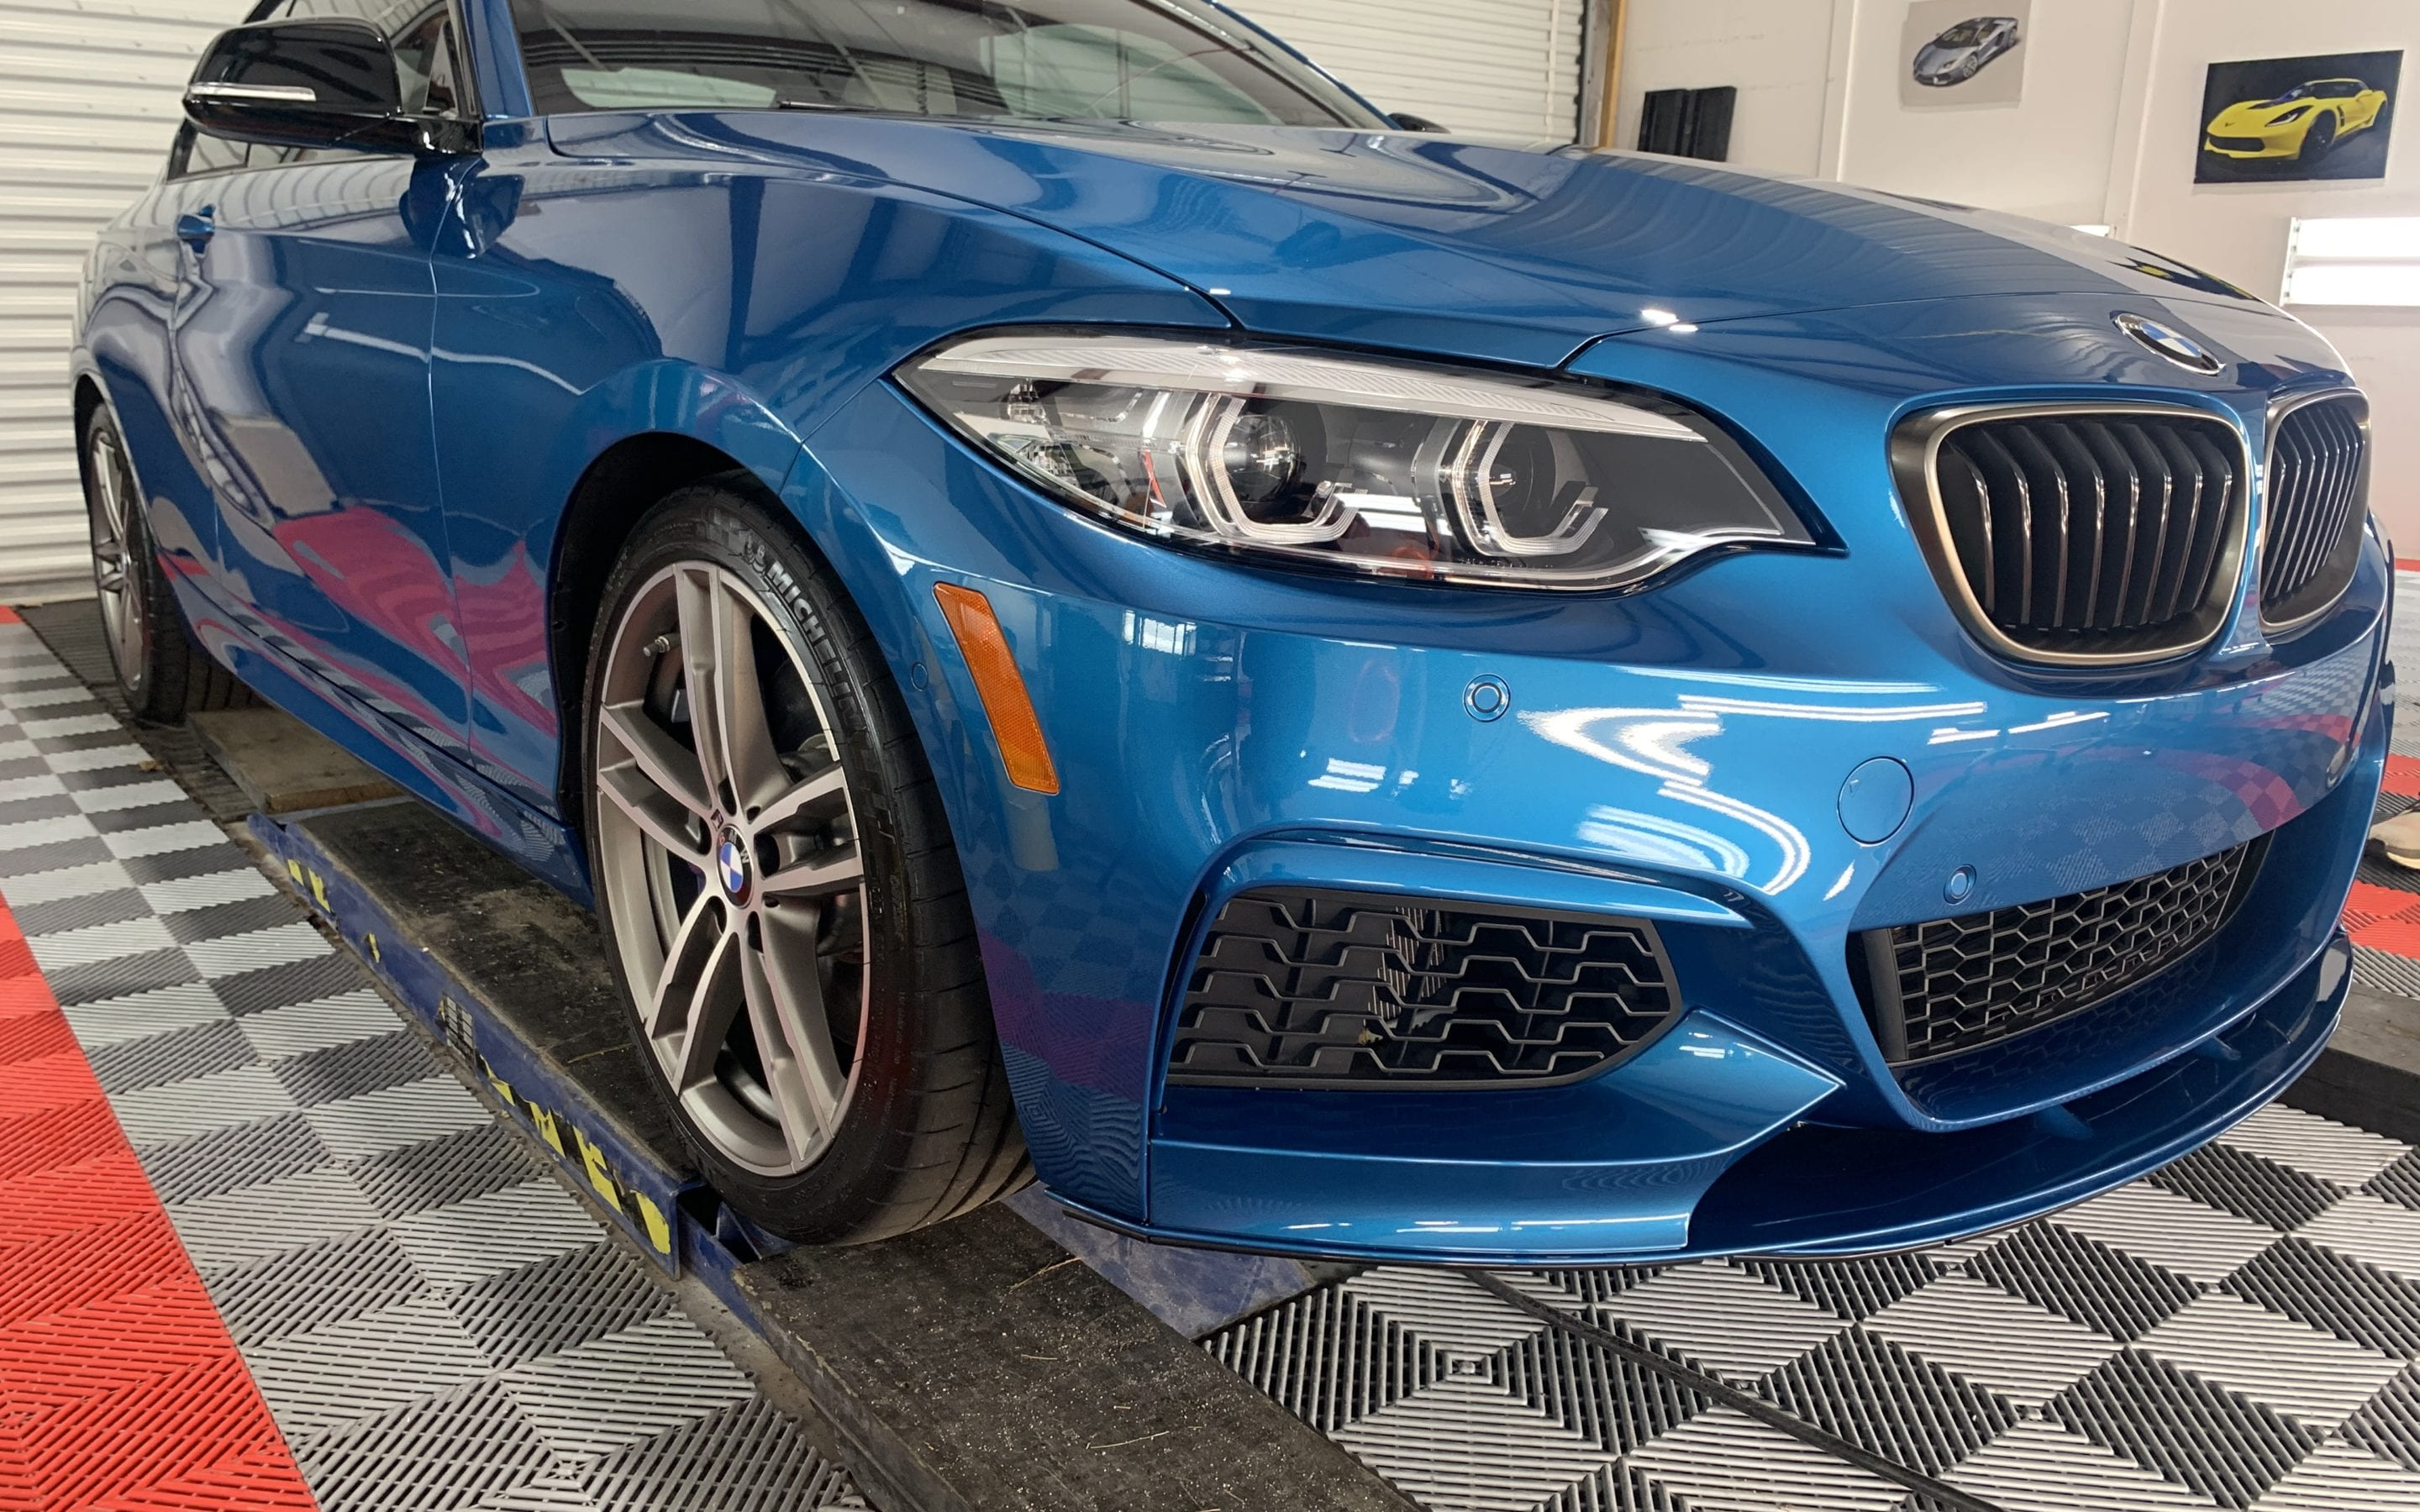 Photo of a blue Ceramic Coating of a 2019 BMW 2 Series